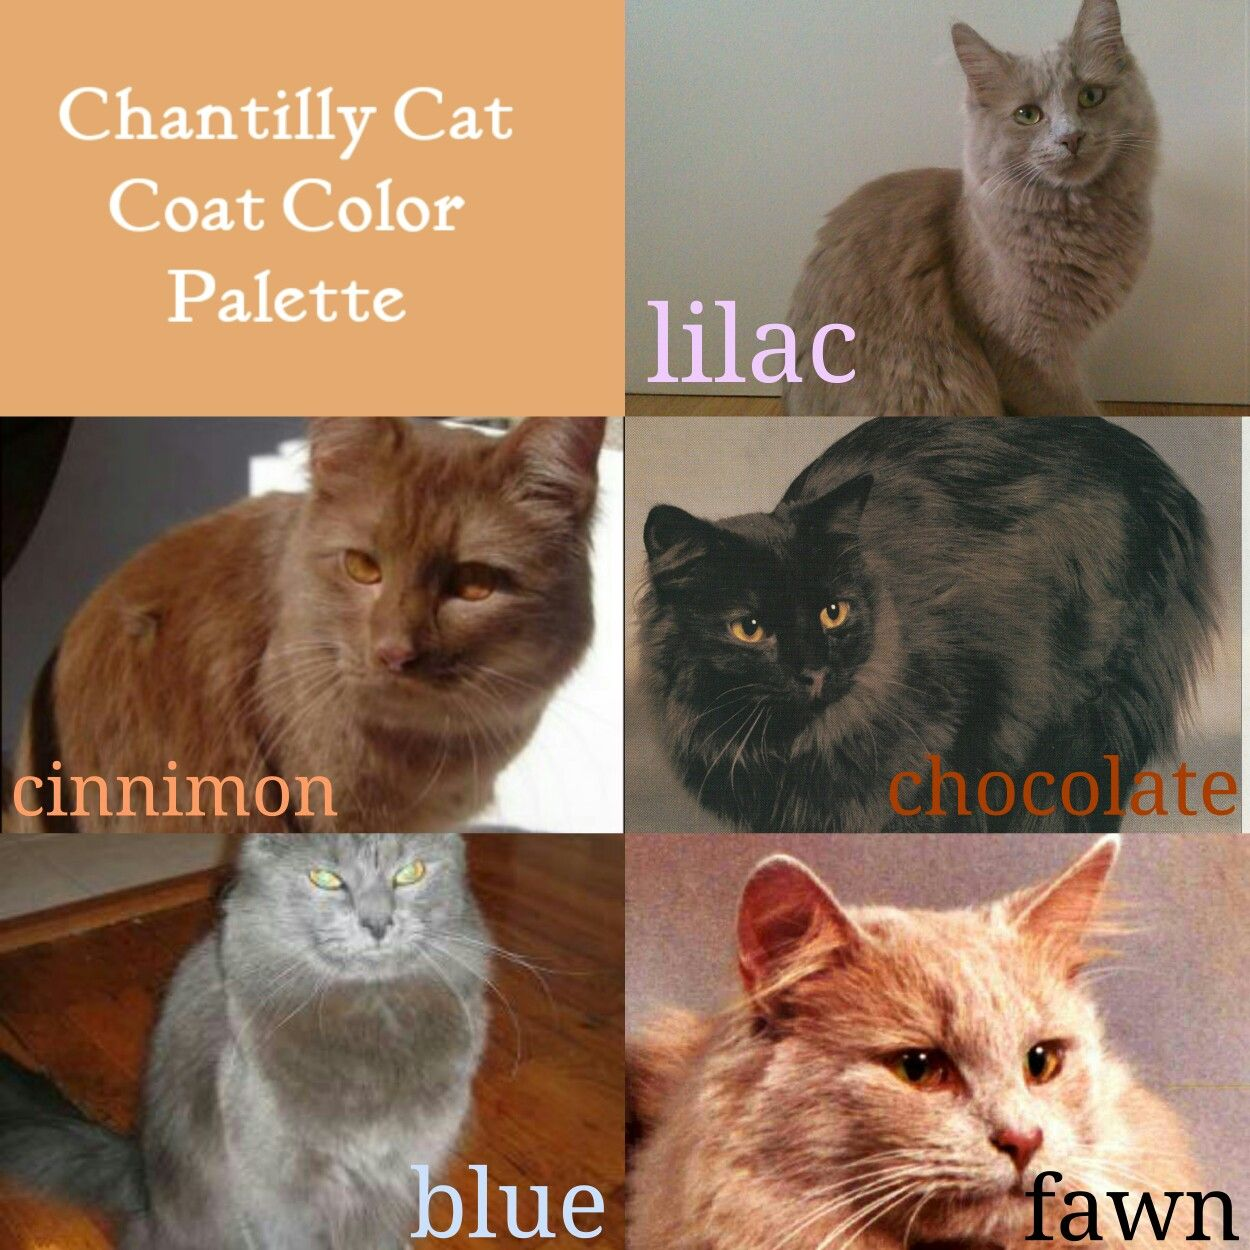 Chantilly Cat Coat Color Palette Lilac Cinnamon Chocolate Blue Fawn Chantilly Cat Colorful Coat Cats